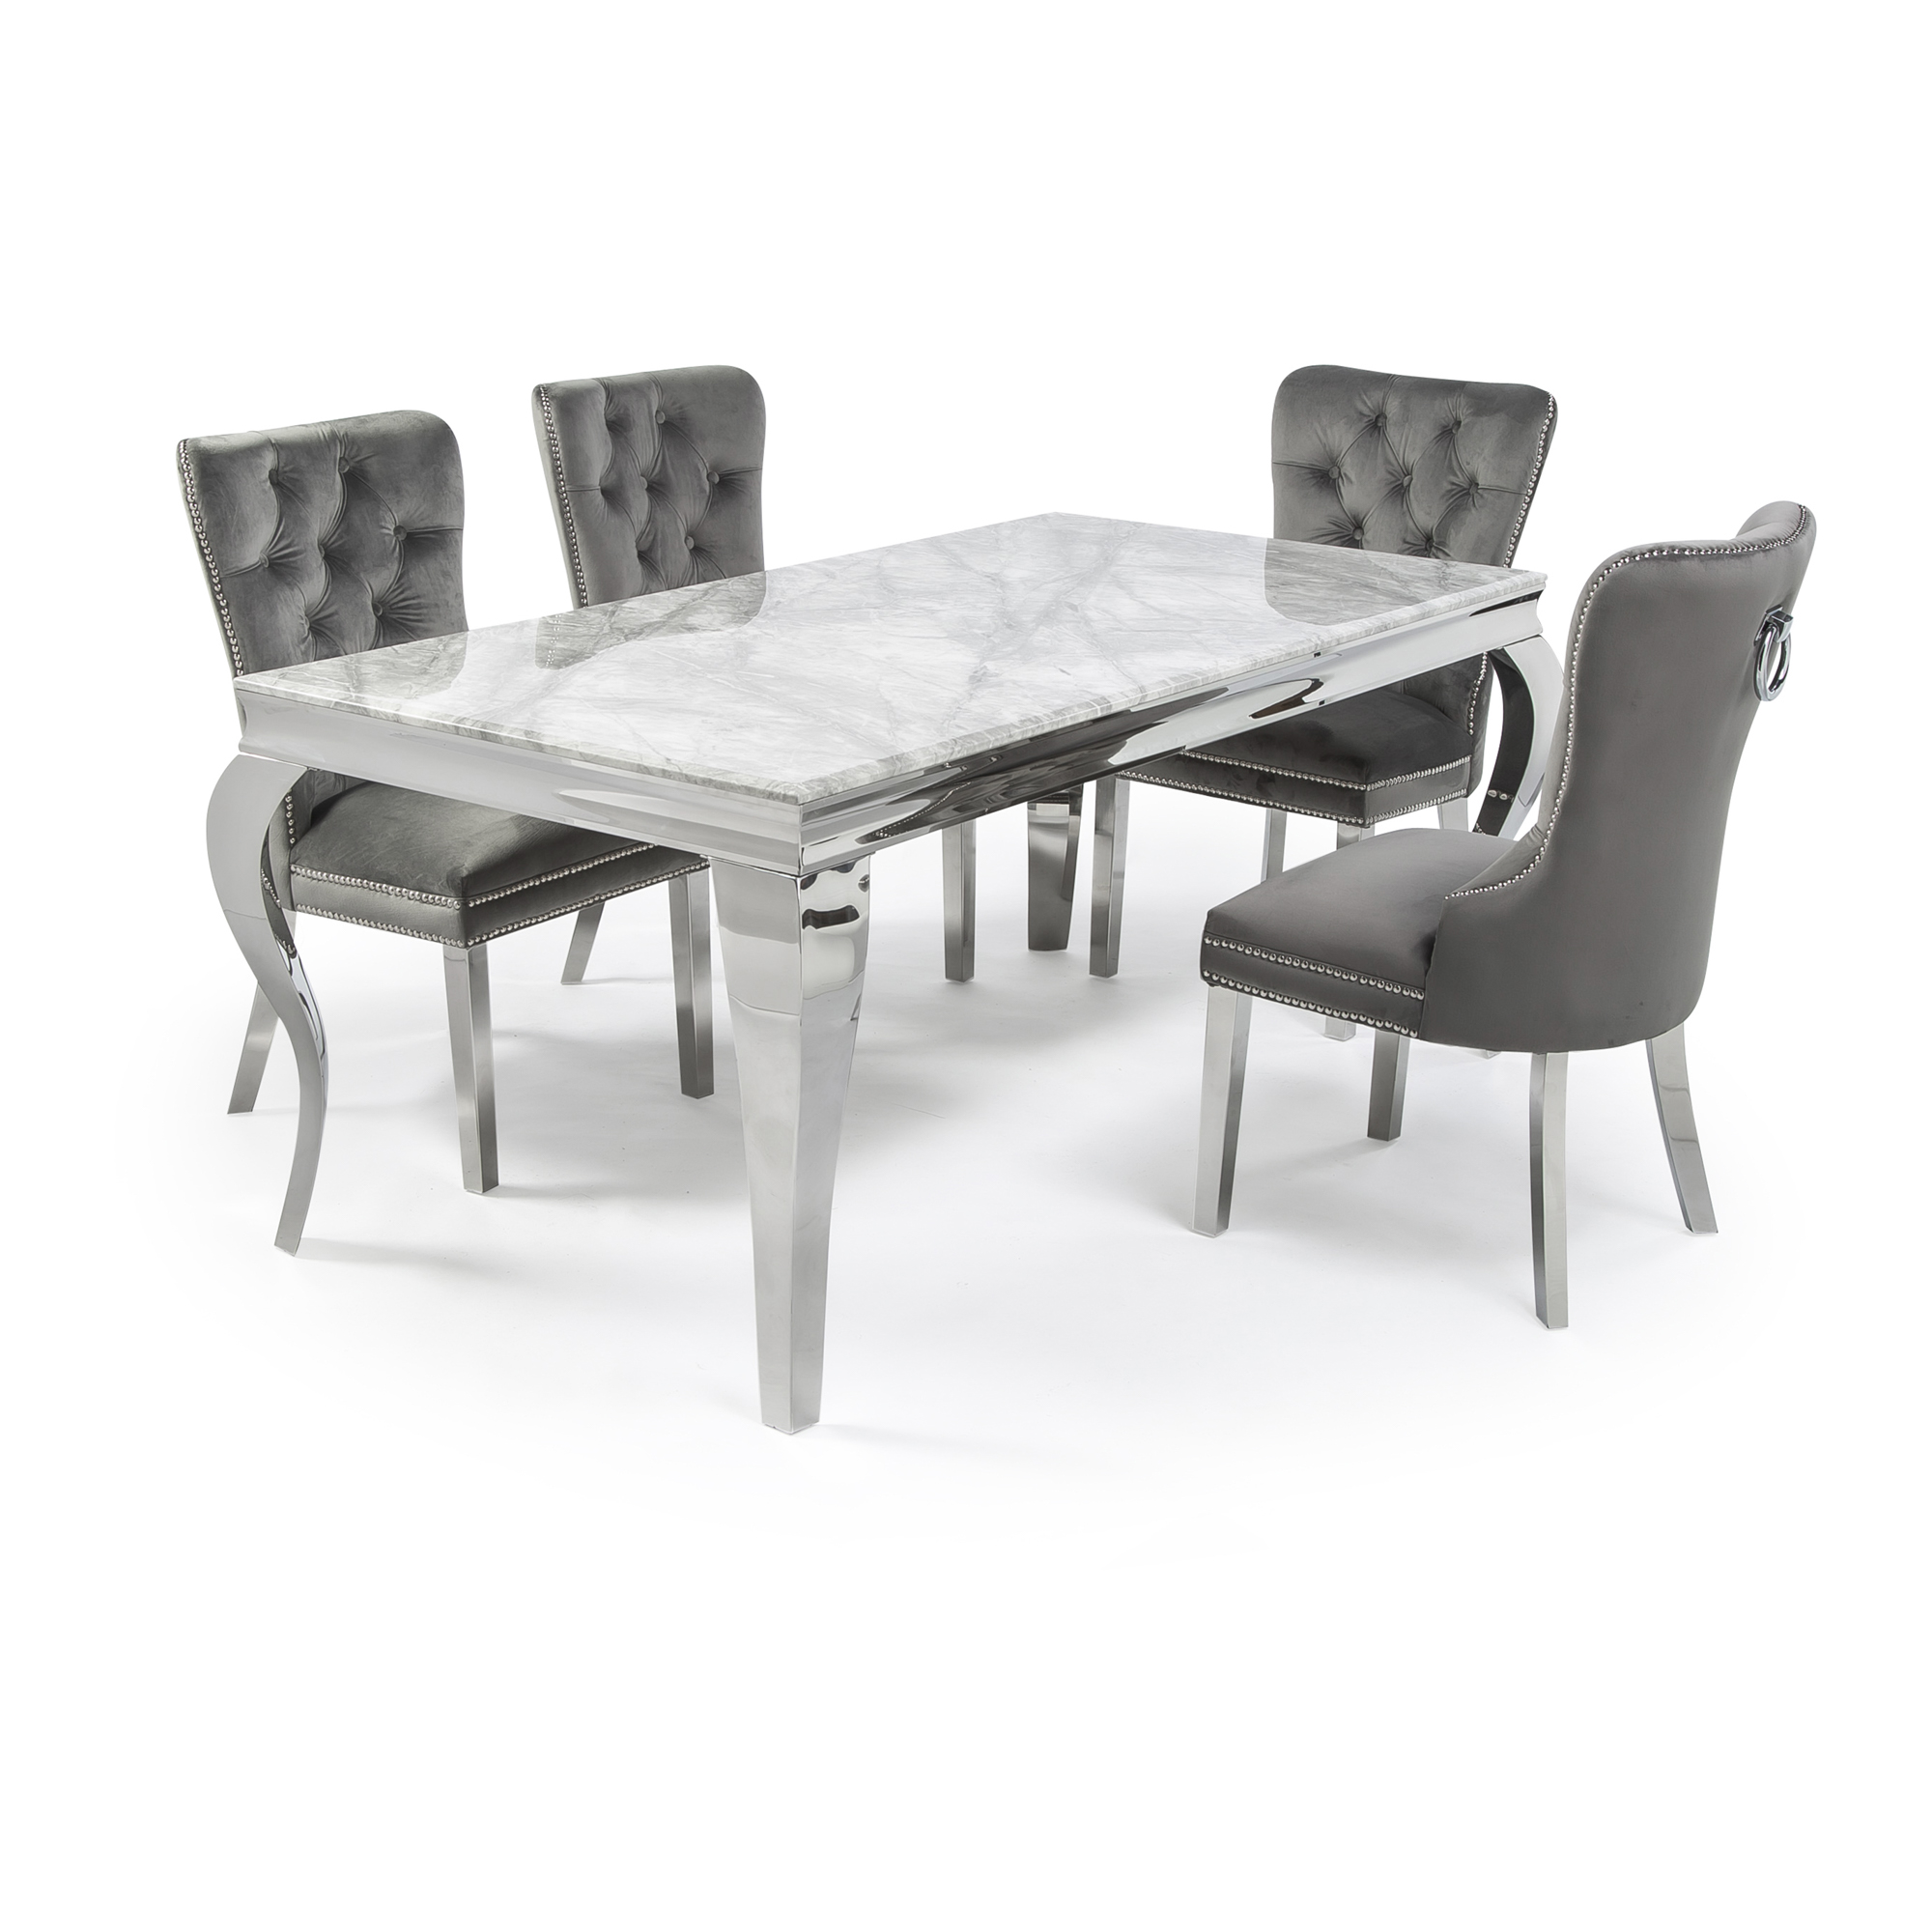 1.6m Louis Polished Steel Dining Grey Marble Table Set with 4 Hale Grey Brushed Velvet Dining Chairs